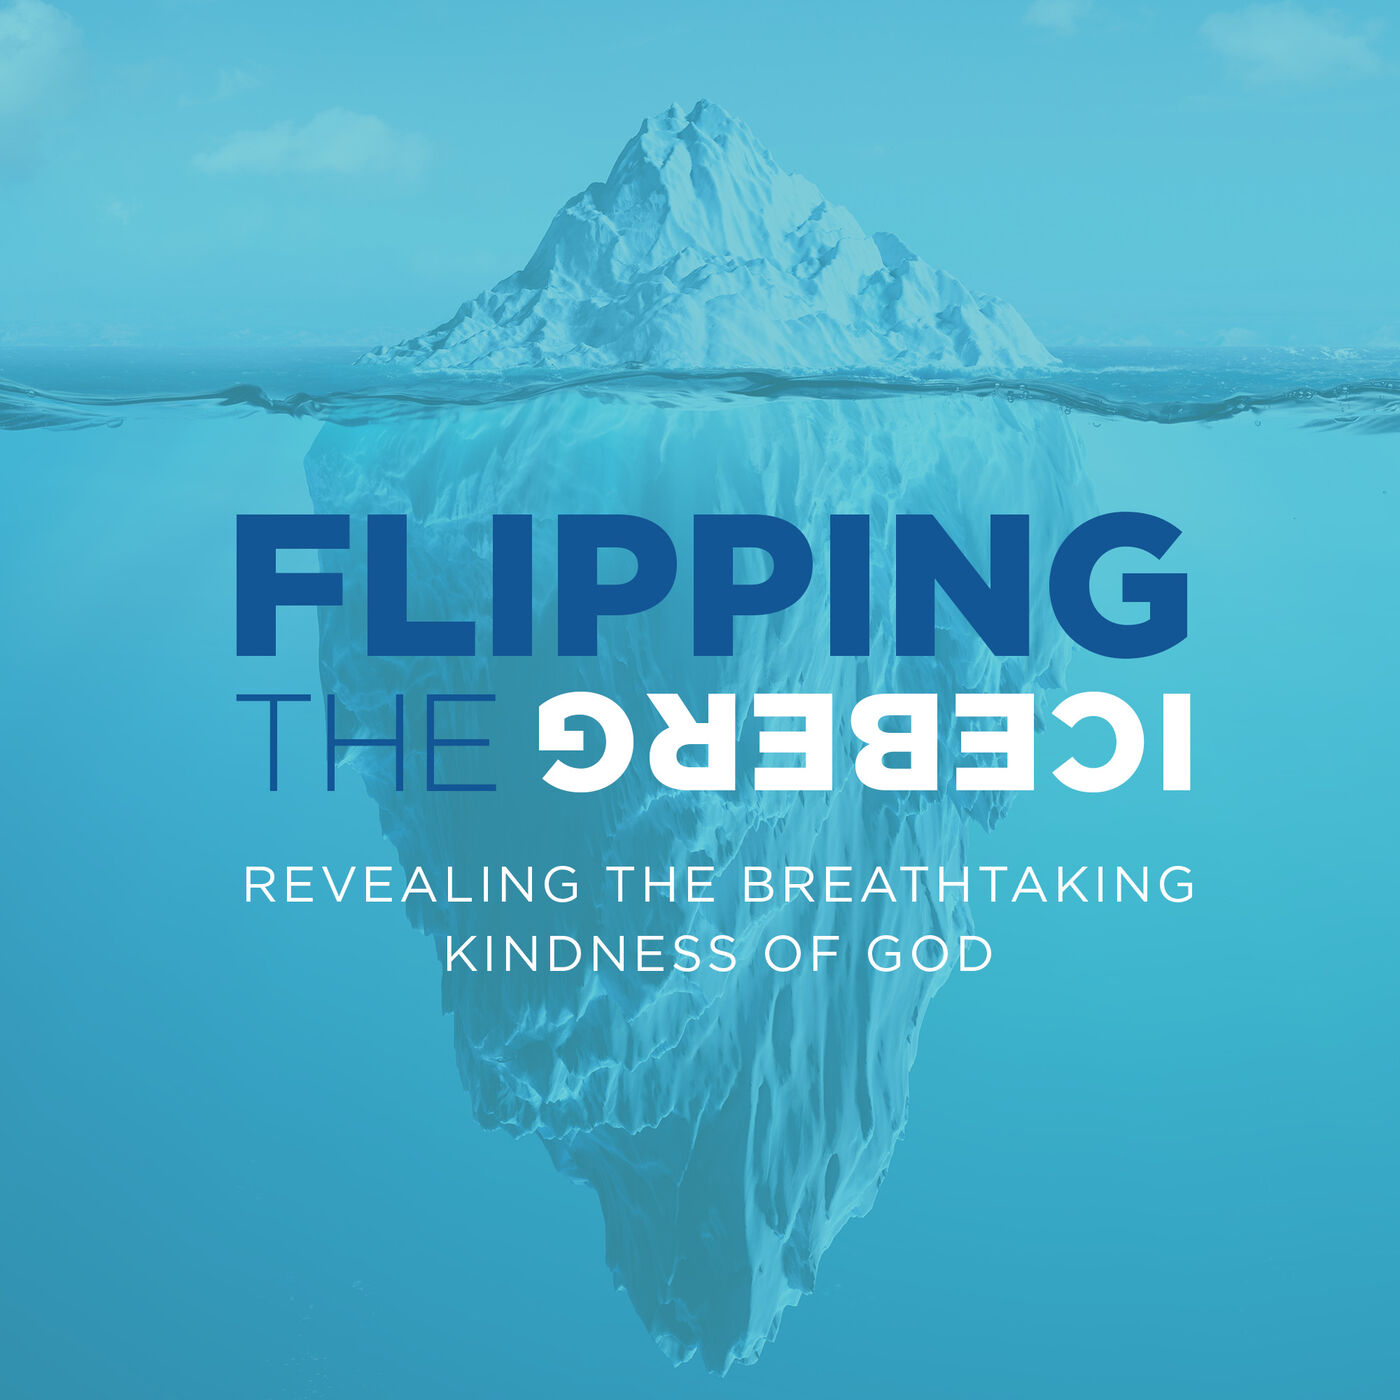 Flipping the Iceberg - In My Failures - Forgiveness (Week 1)